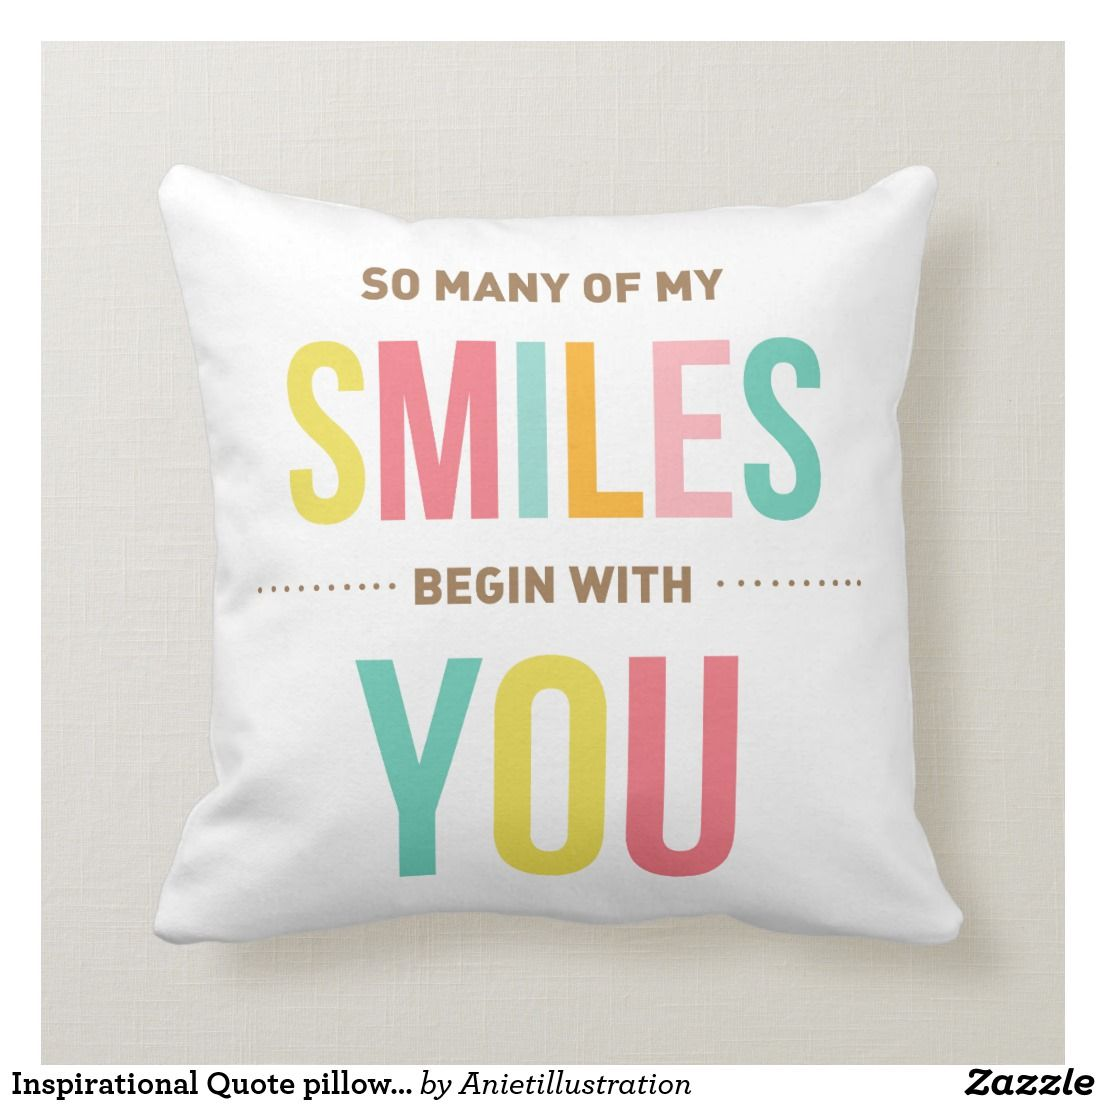 Inspirational Quote Pillow Love Smiles Pillow Quotes Pillows Inspirational Quotes